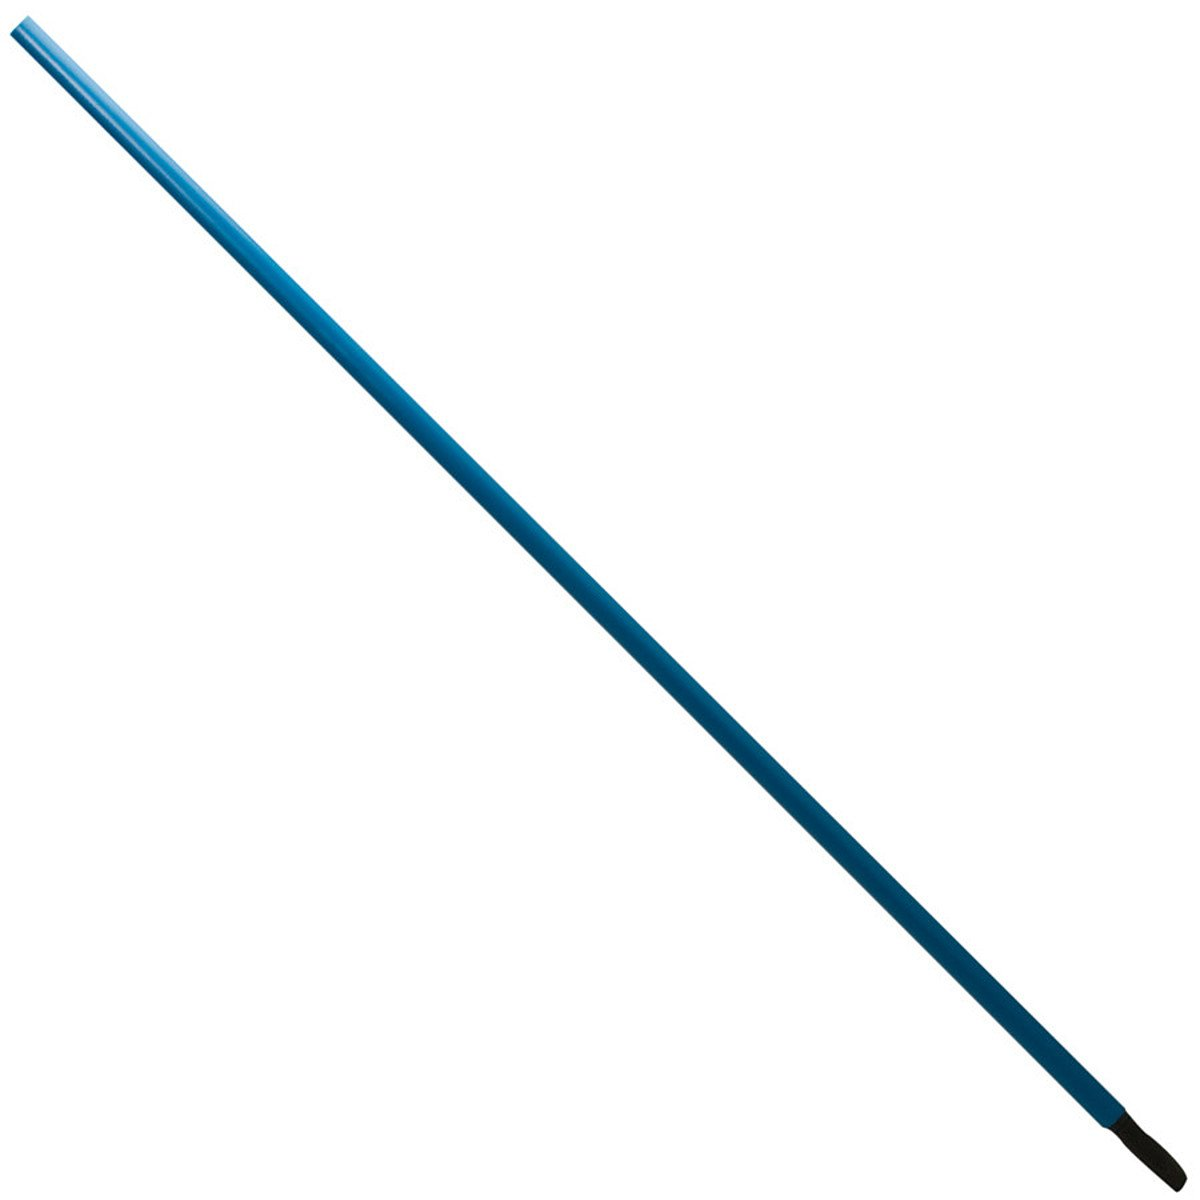 Carlisle Exhd Raft Oar Shaft 10 Blue, by Carlisle